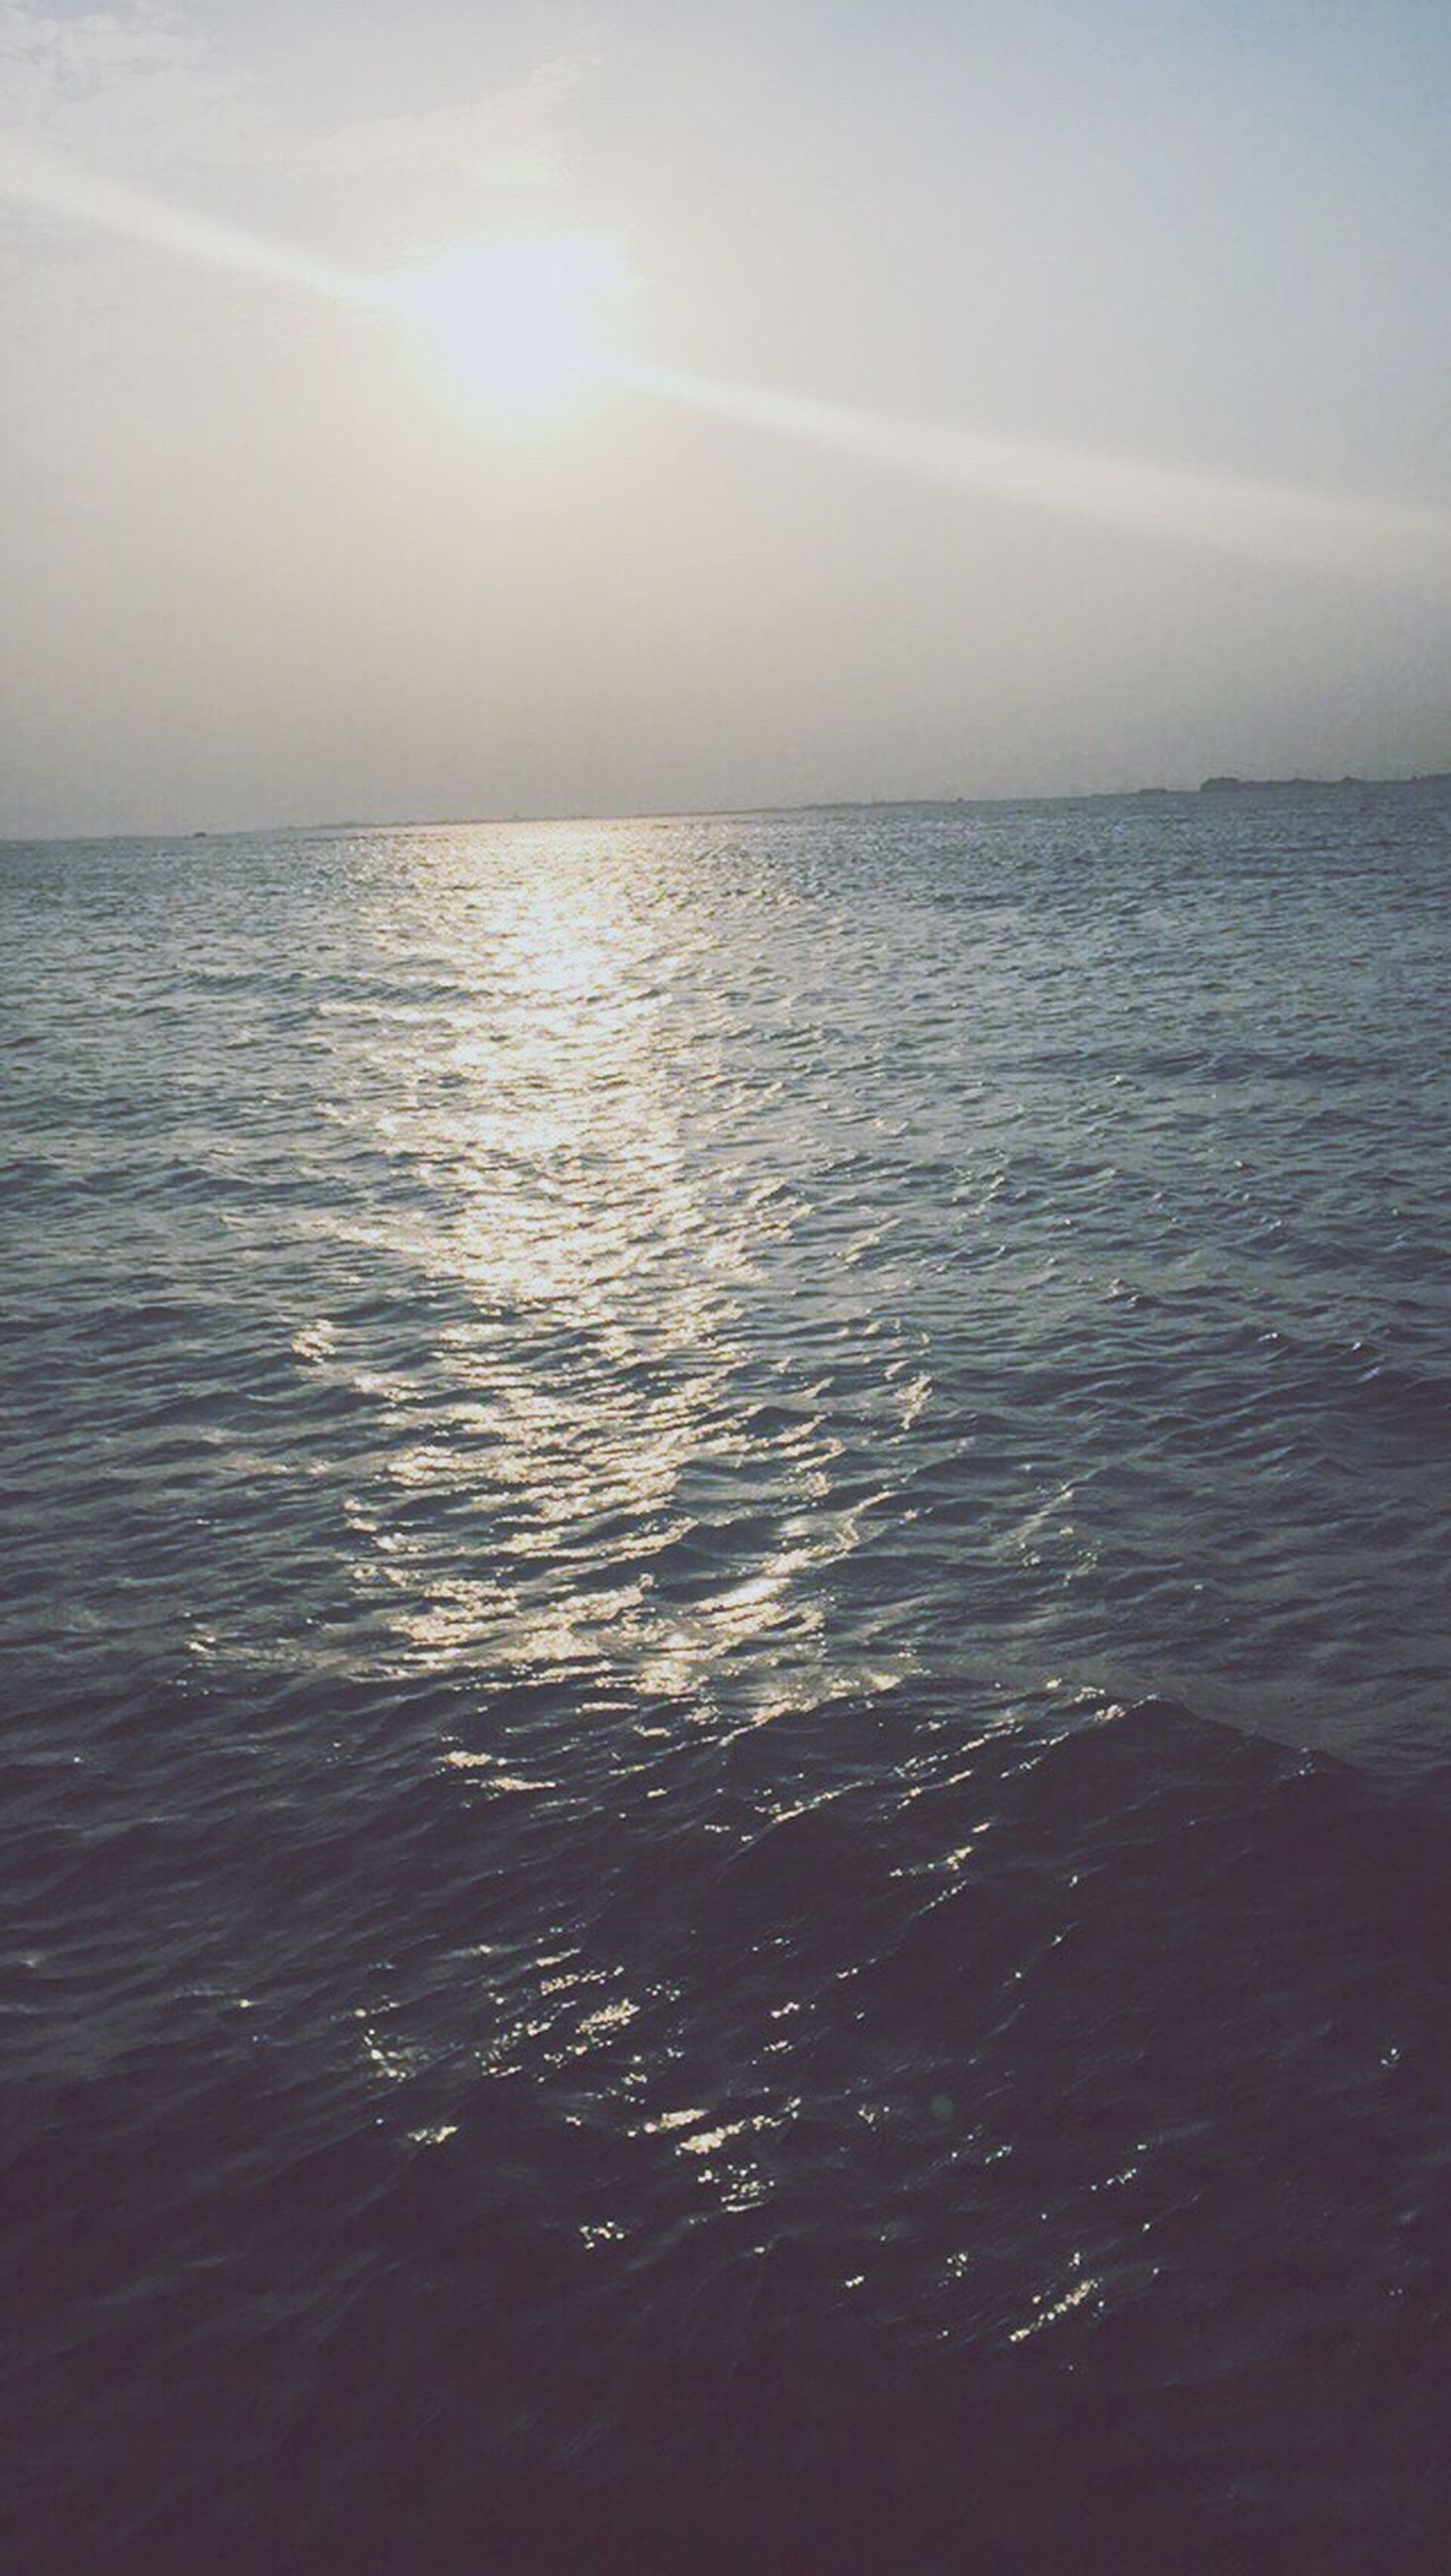 sea, beauty in nature, nature, sunset, tranquil scene, water, tranquility, horizon over water, sky, scenics, sunlight, outdoors, summer, no people, beach, day, refraction